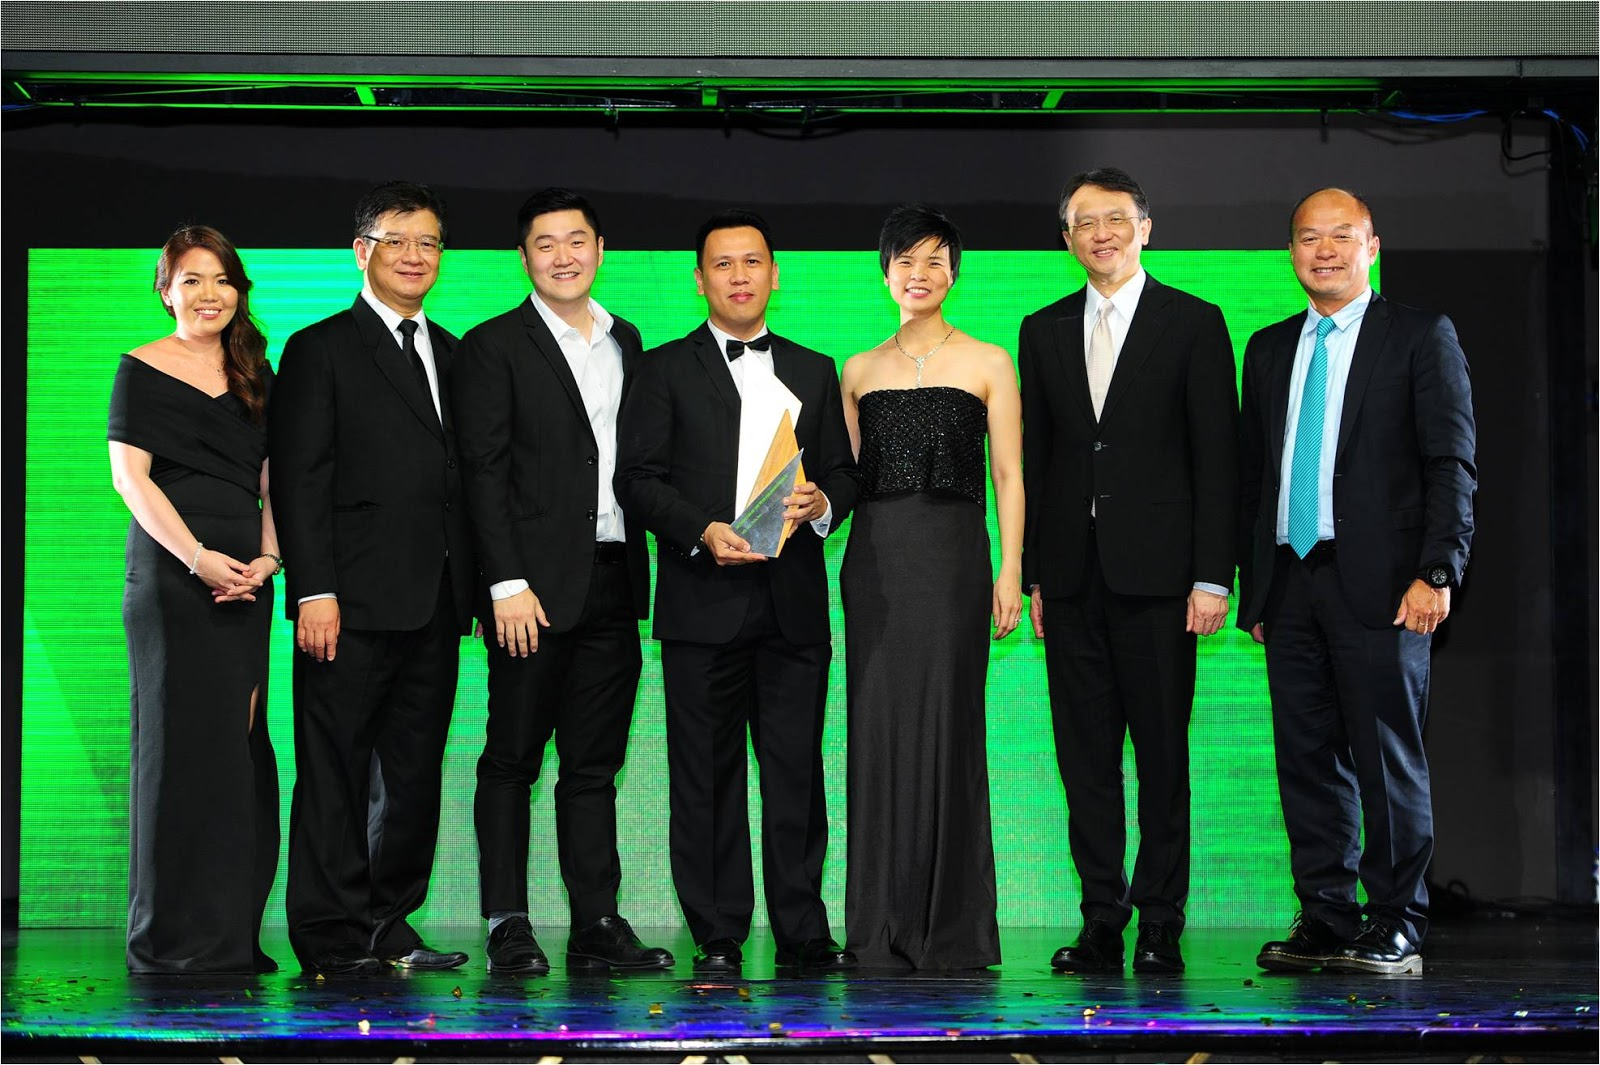 Acer Smartphone Distributor of the Year